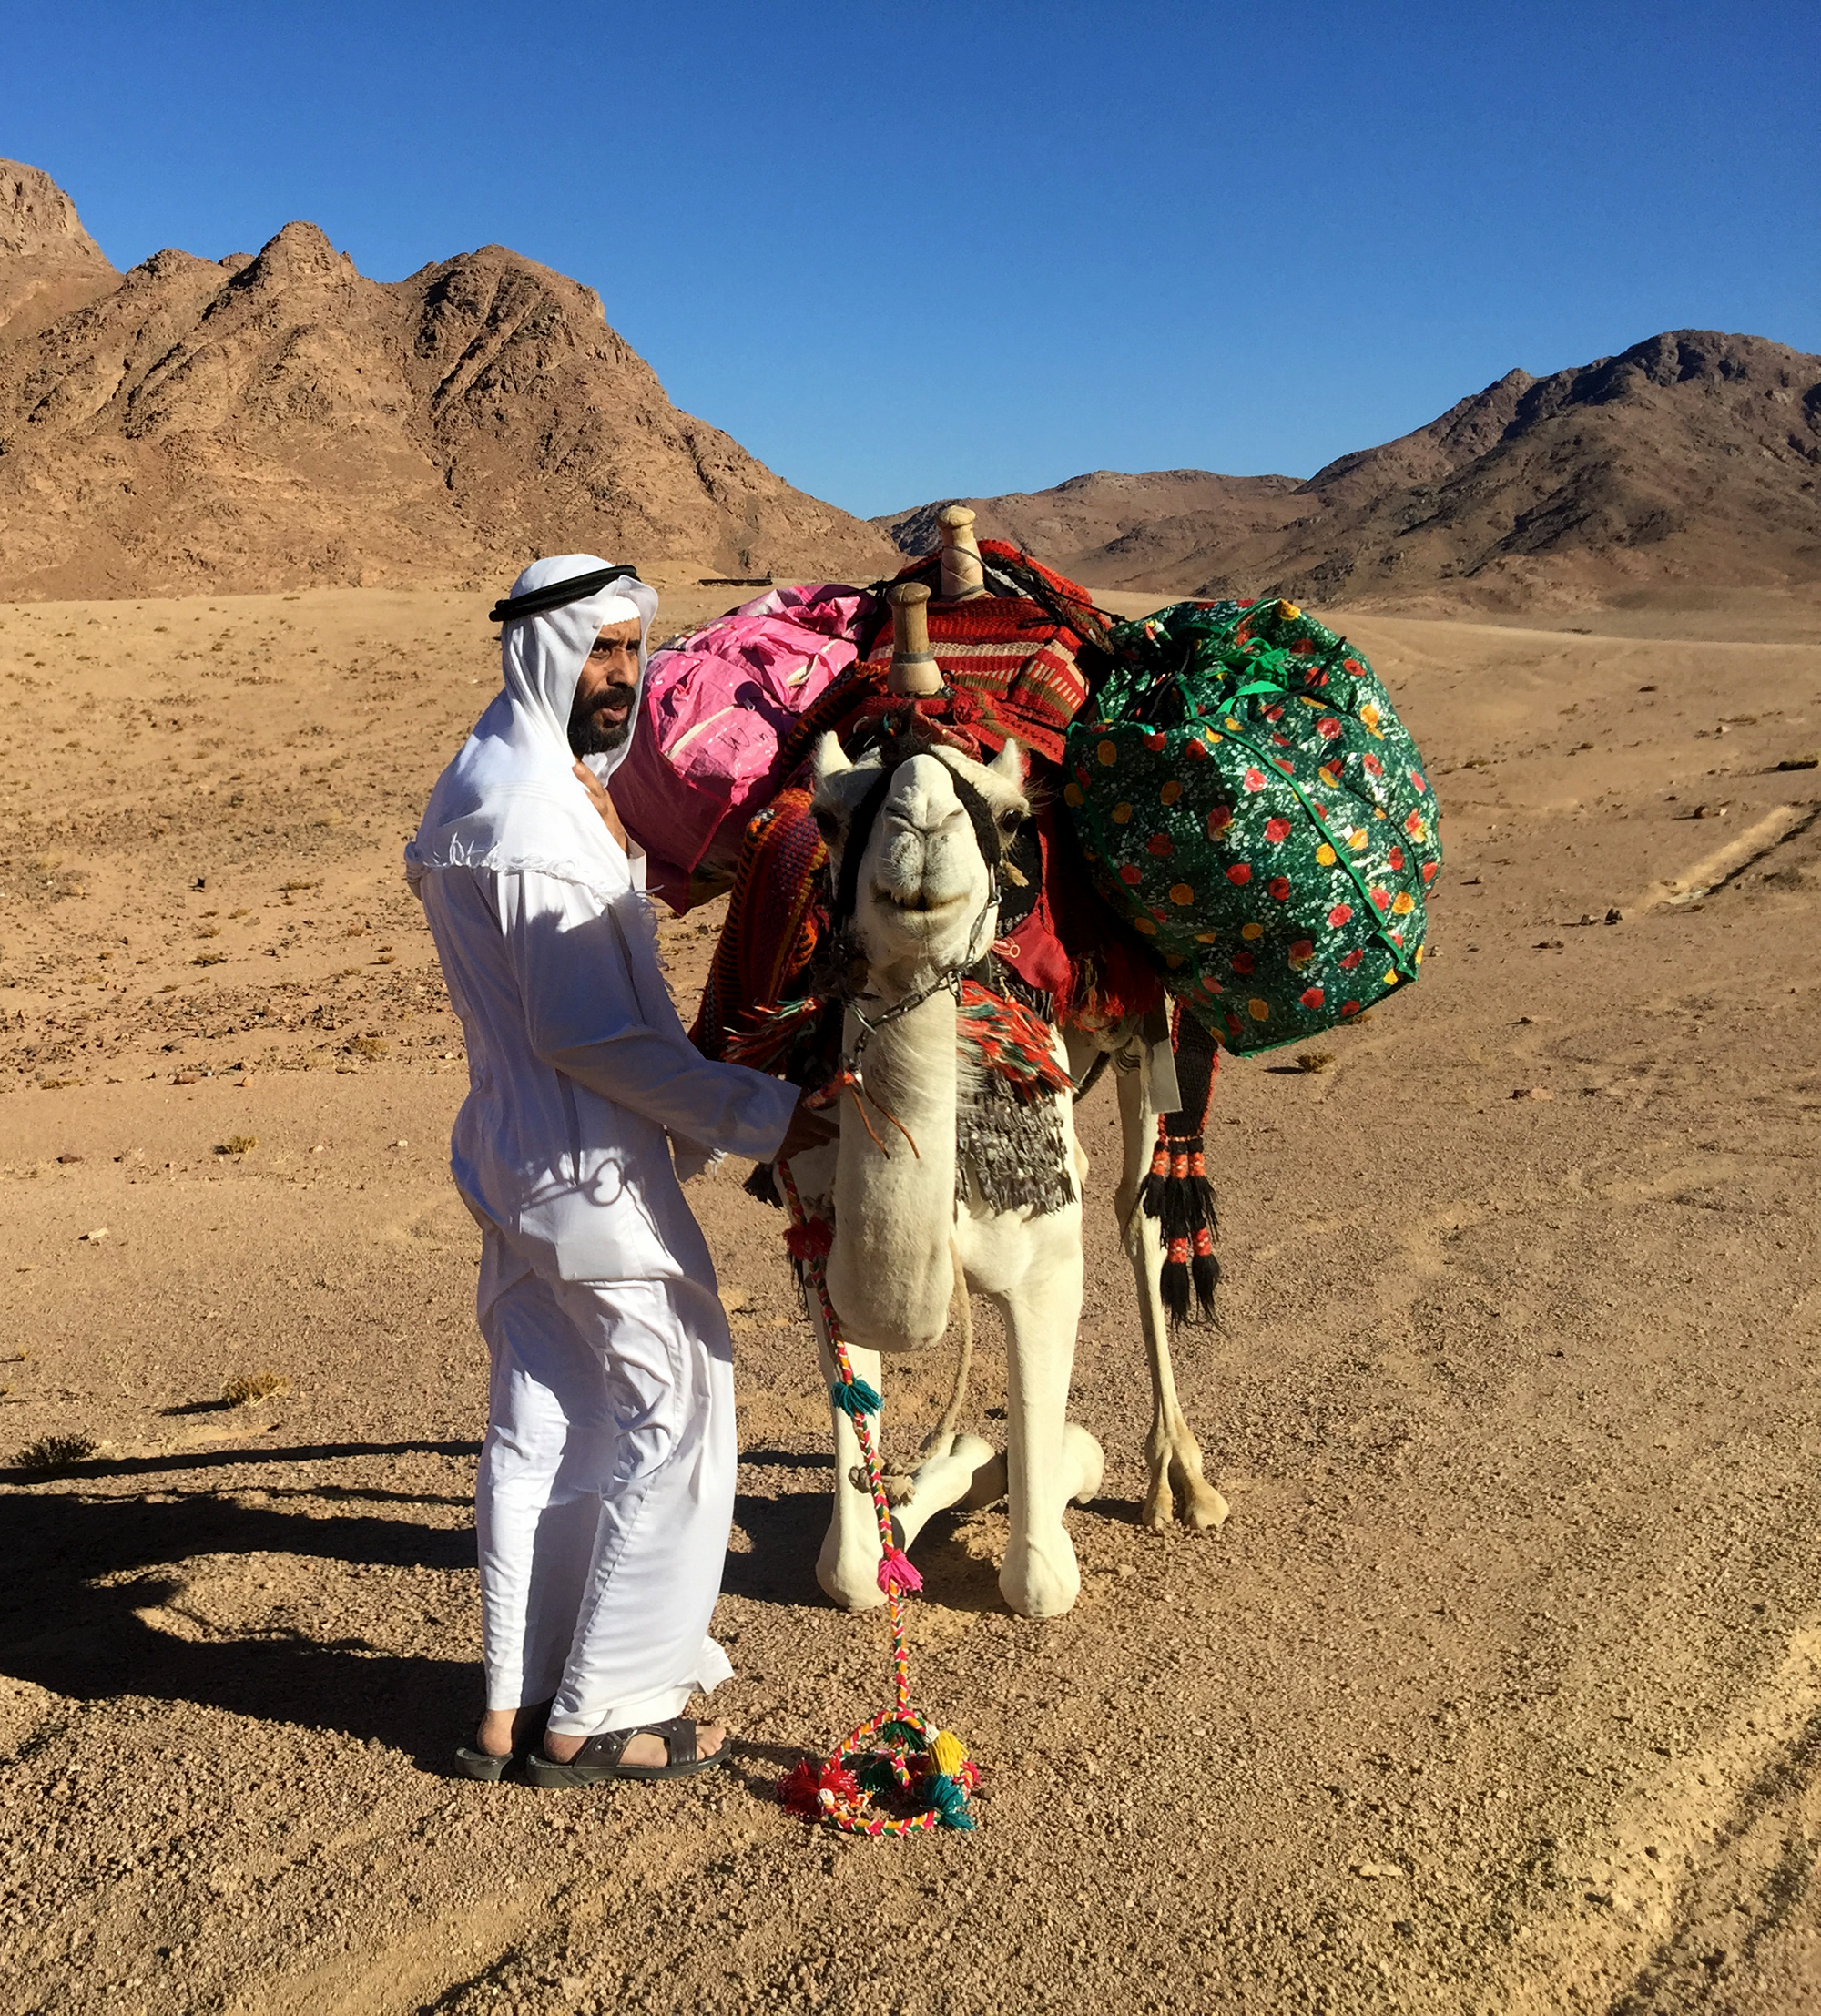 Mohamed collecting Bedouin craft on his camel